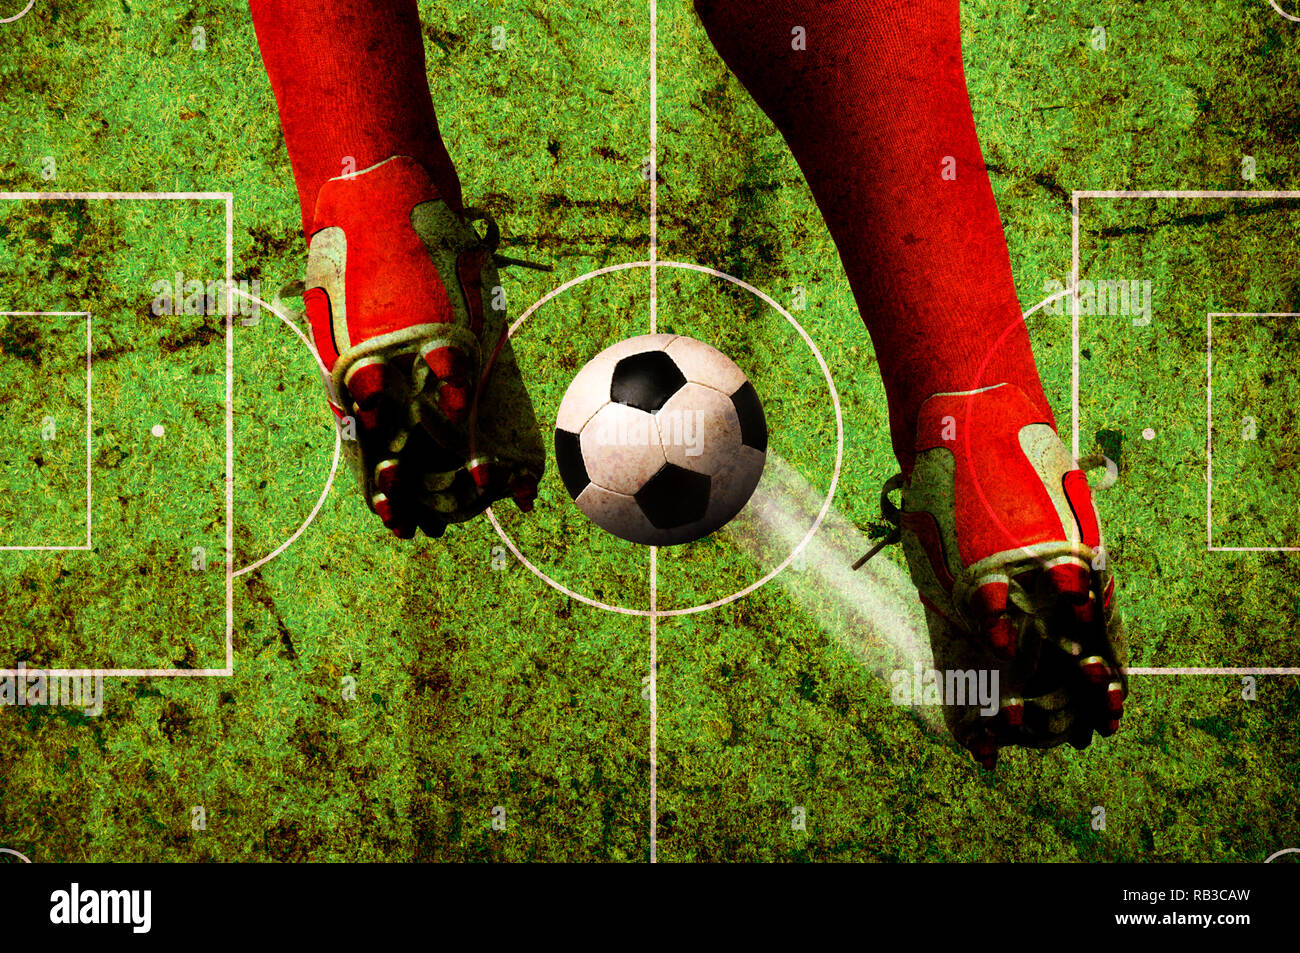 football player legs and ball, soccer concept in grunge style - Stock Image